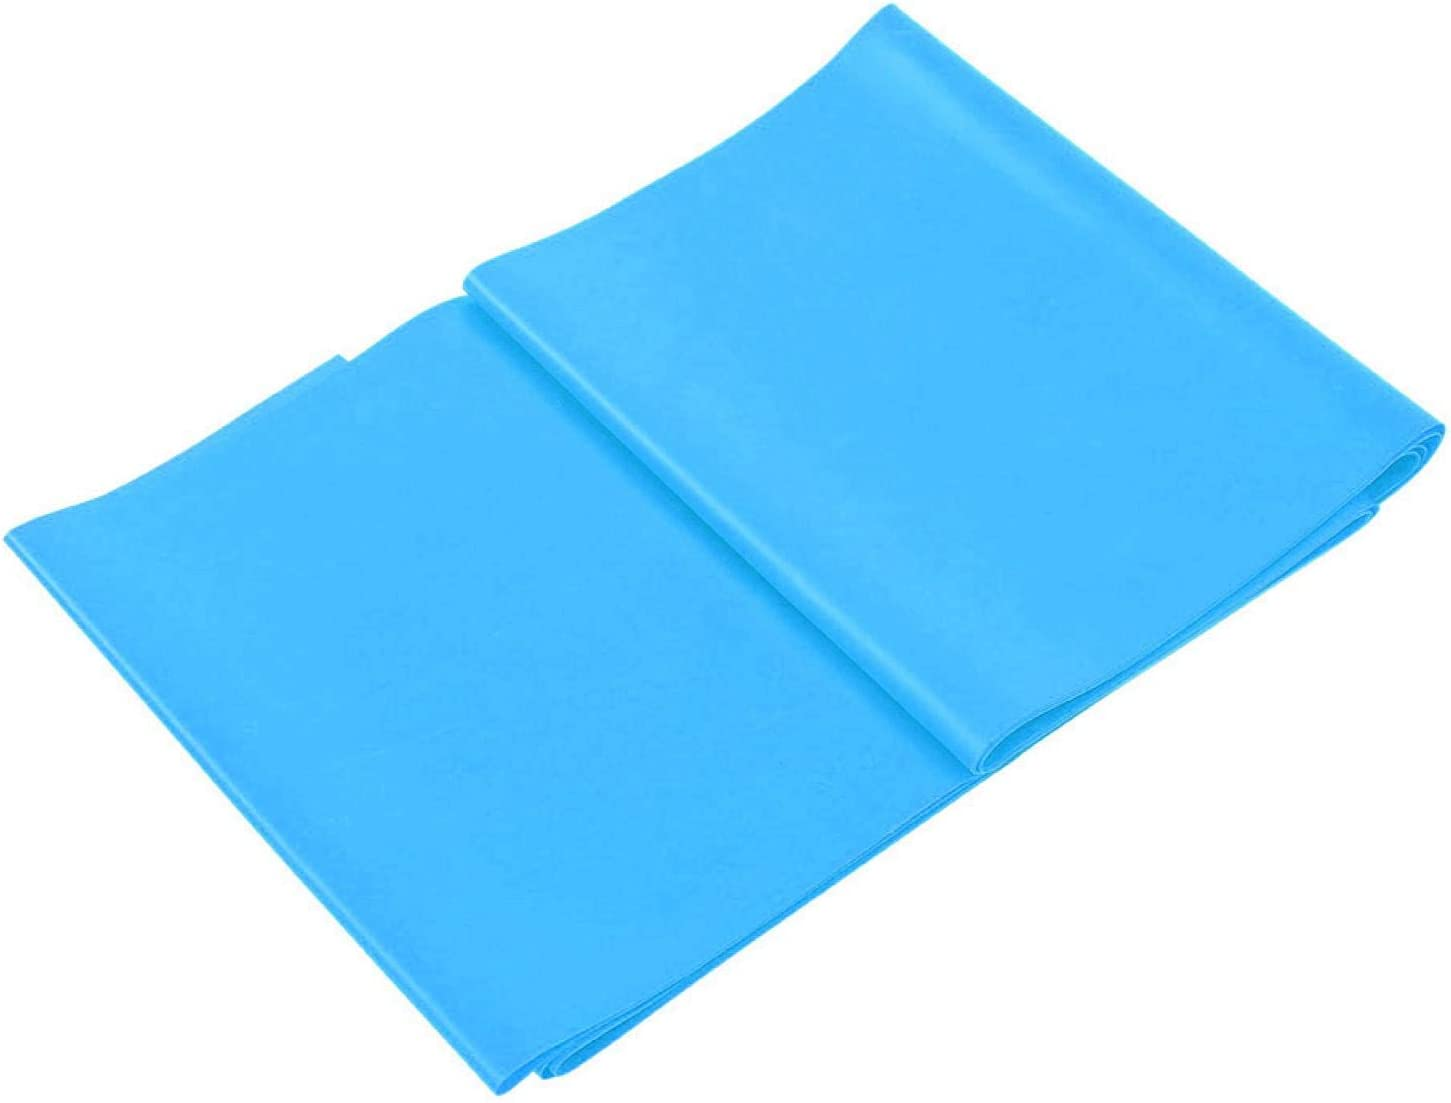 Overseas parallel import regular item Environmentally-Friendly Latex Resistance Department store Exercise St Band Yoga